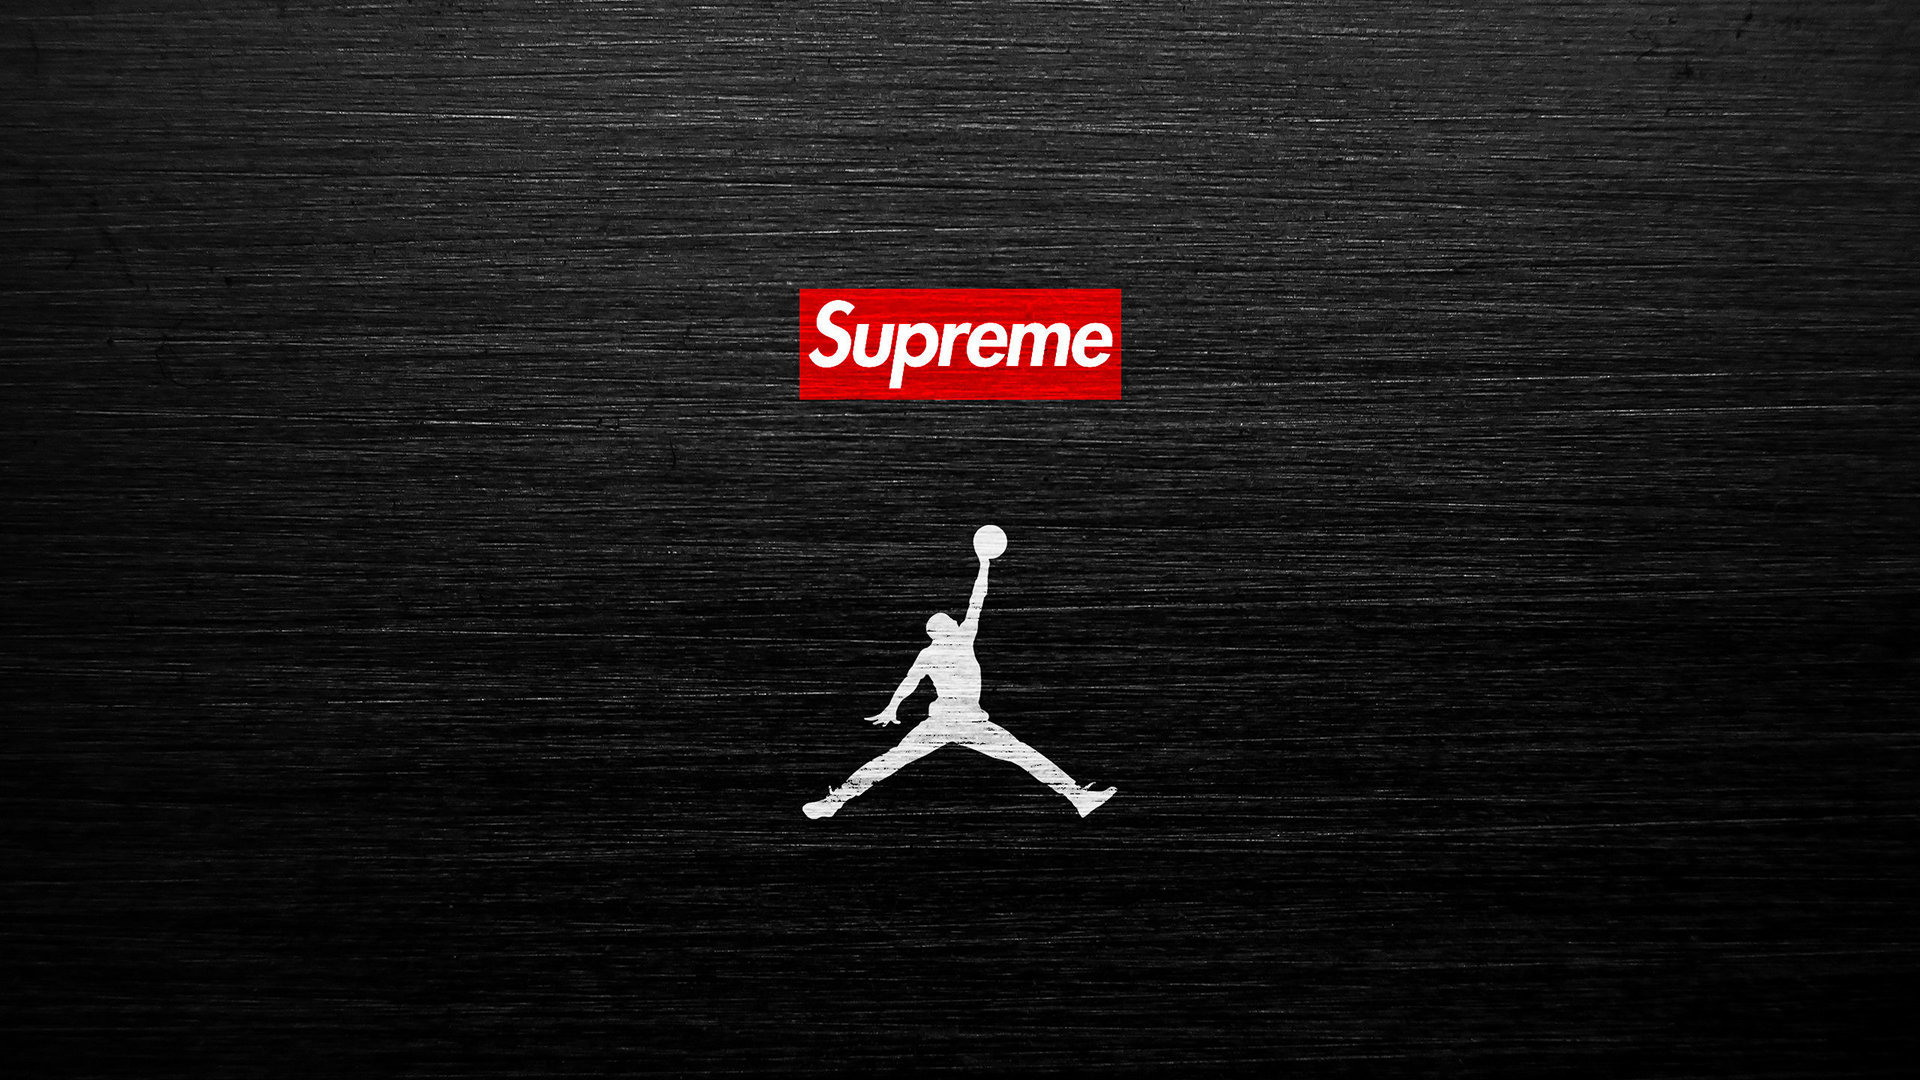 Air Jordan Supreme Wallpaper   AuthenticSupremecom 1920x1080